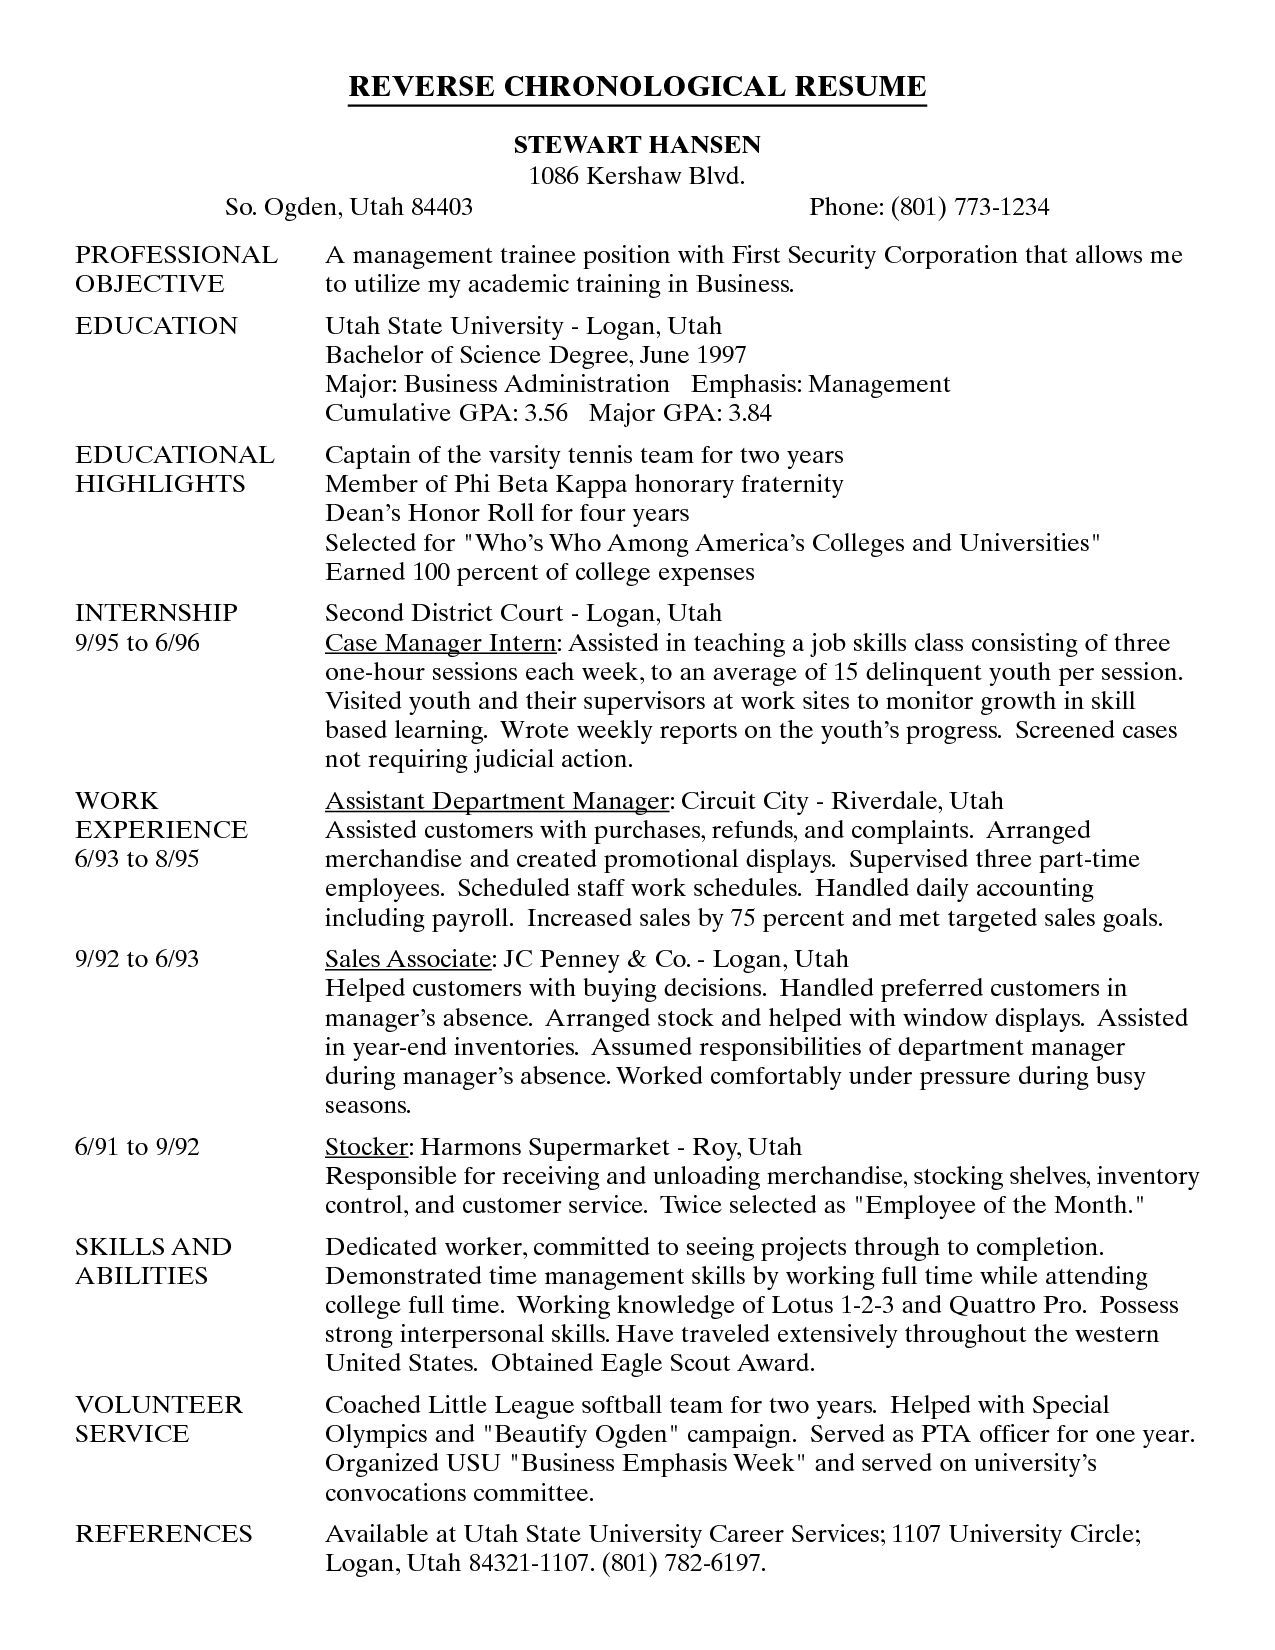 Chronological Order Resume Example Dc0364f86 The Reverse ...